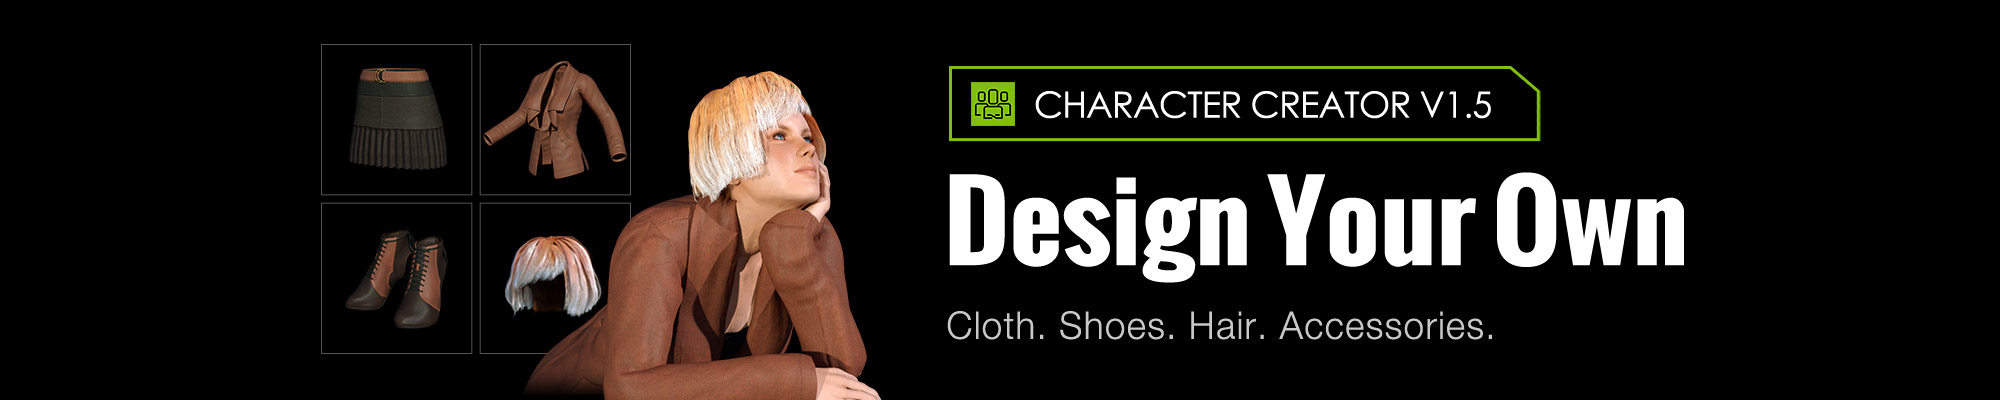 Character Creator - Create Your Own Outfit